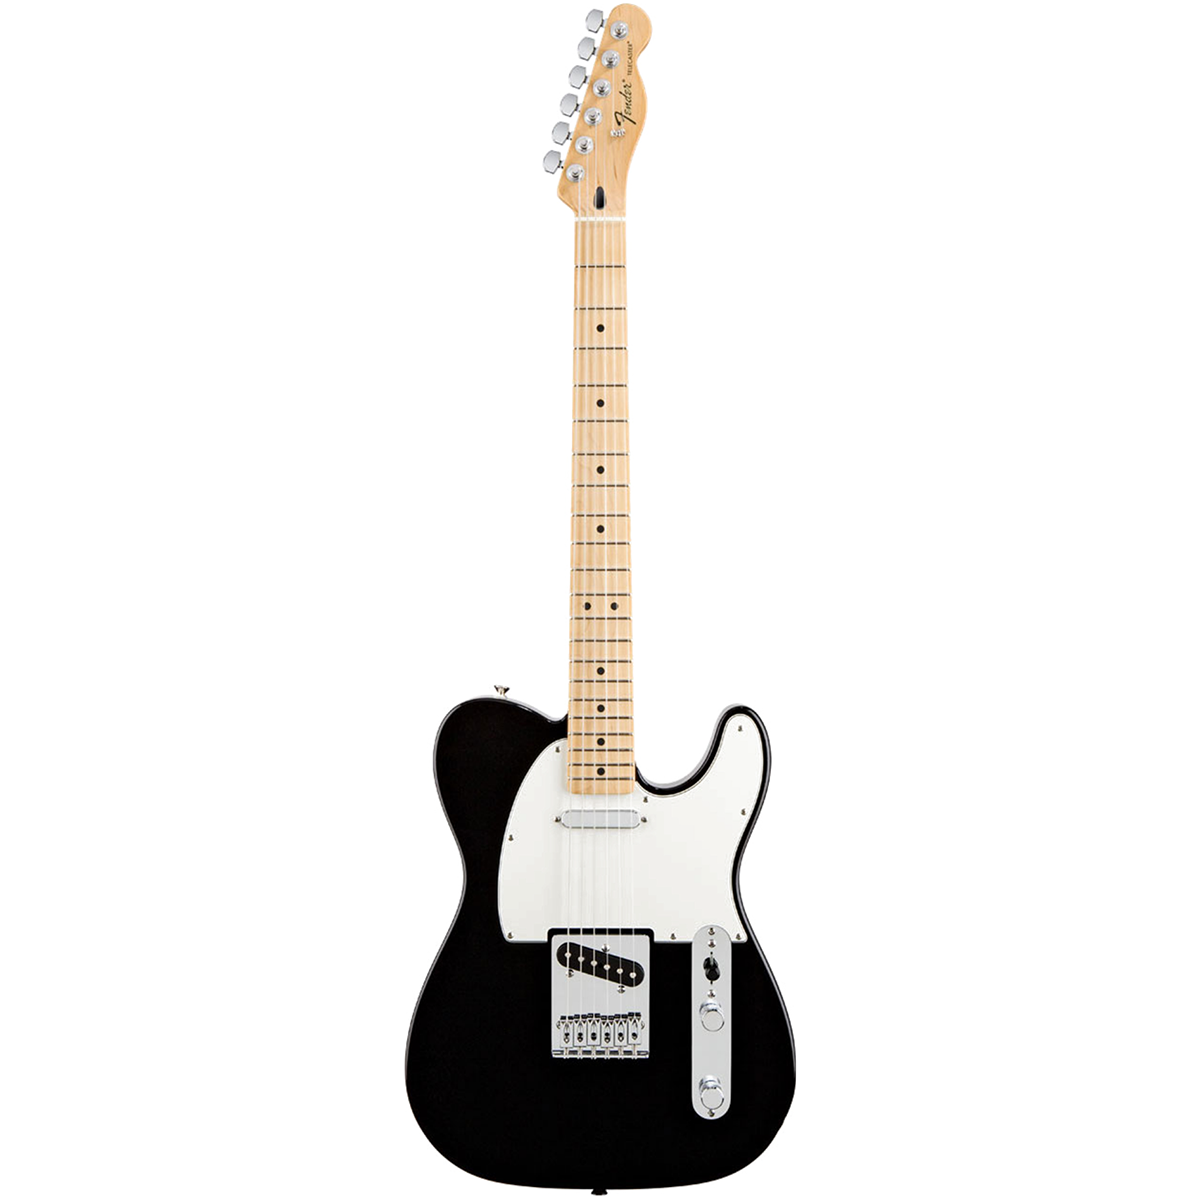 Fender StandardTelecaster,MN,BLK el-guitar sort